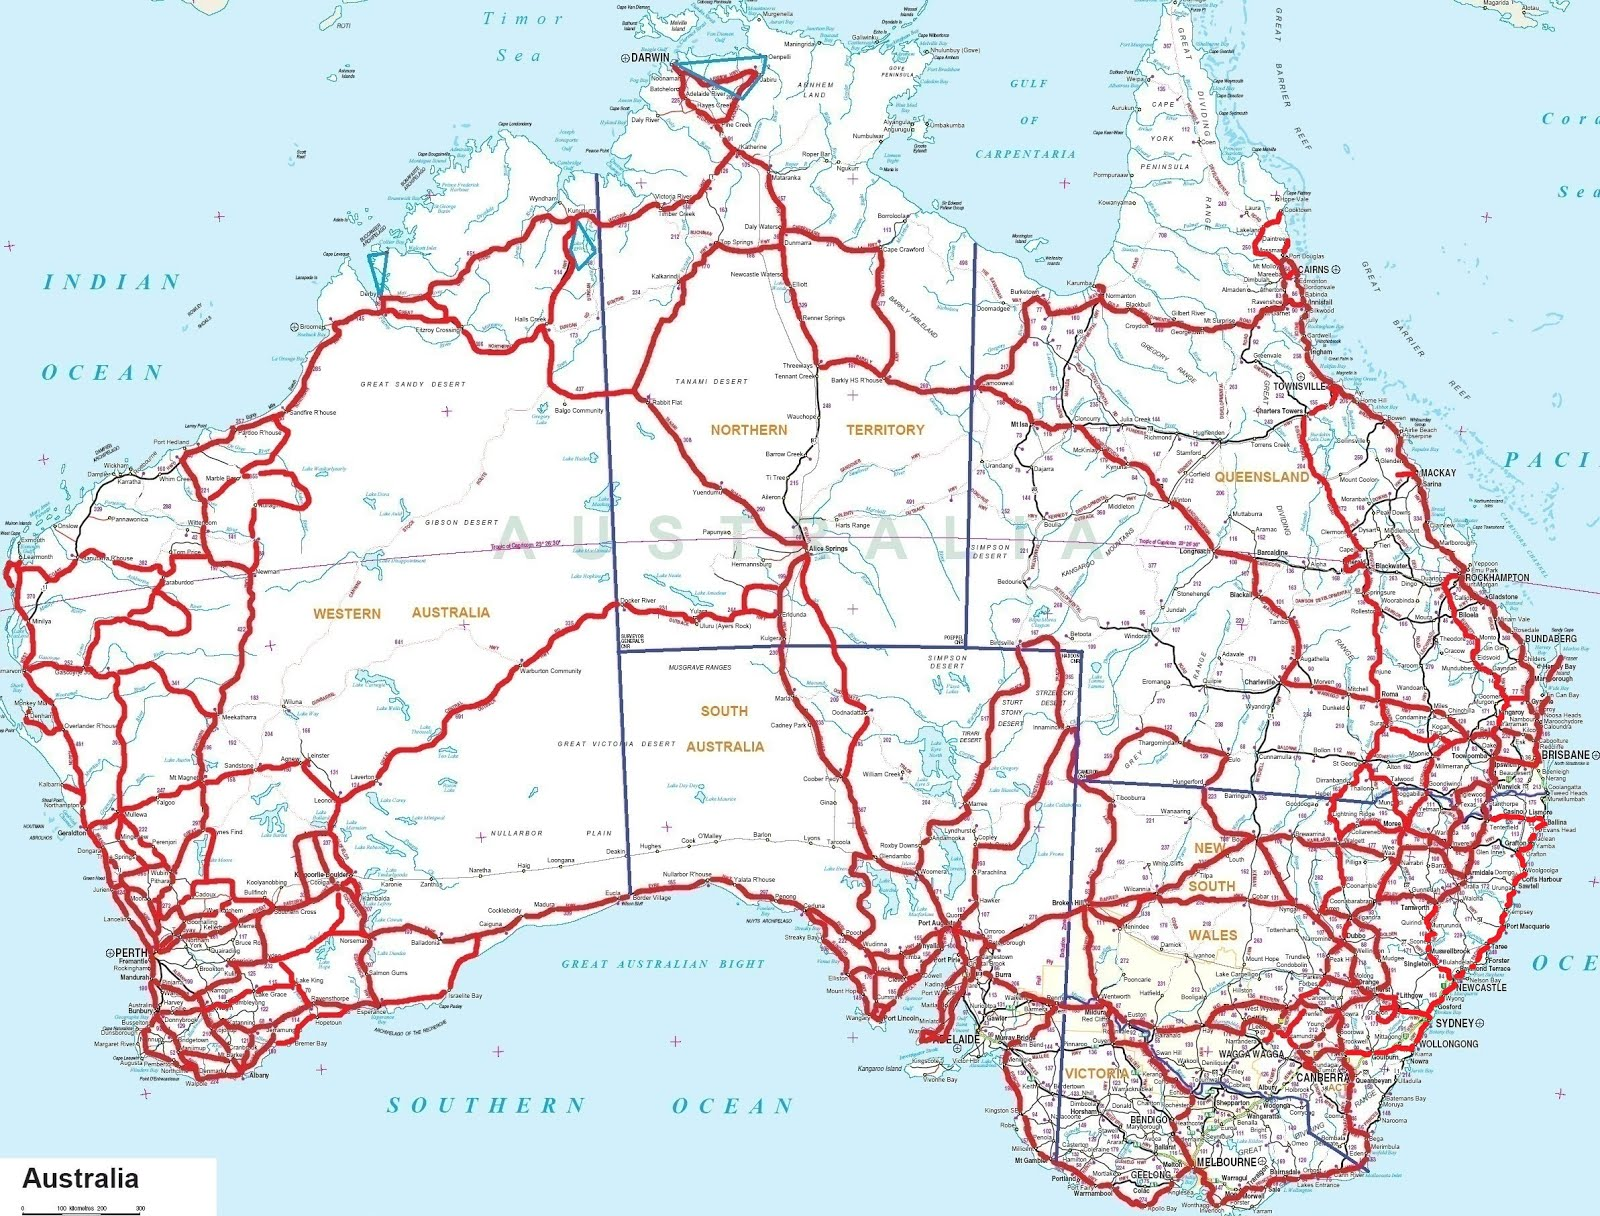 Our Outback Travels